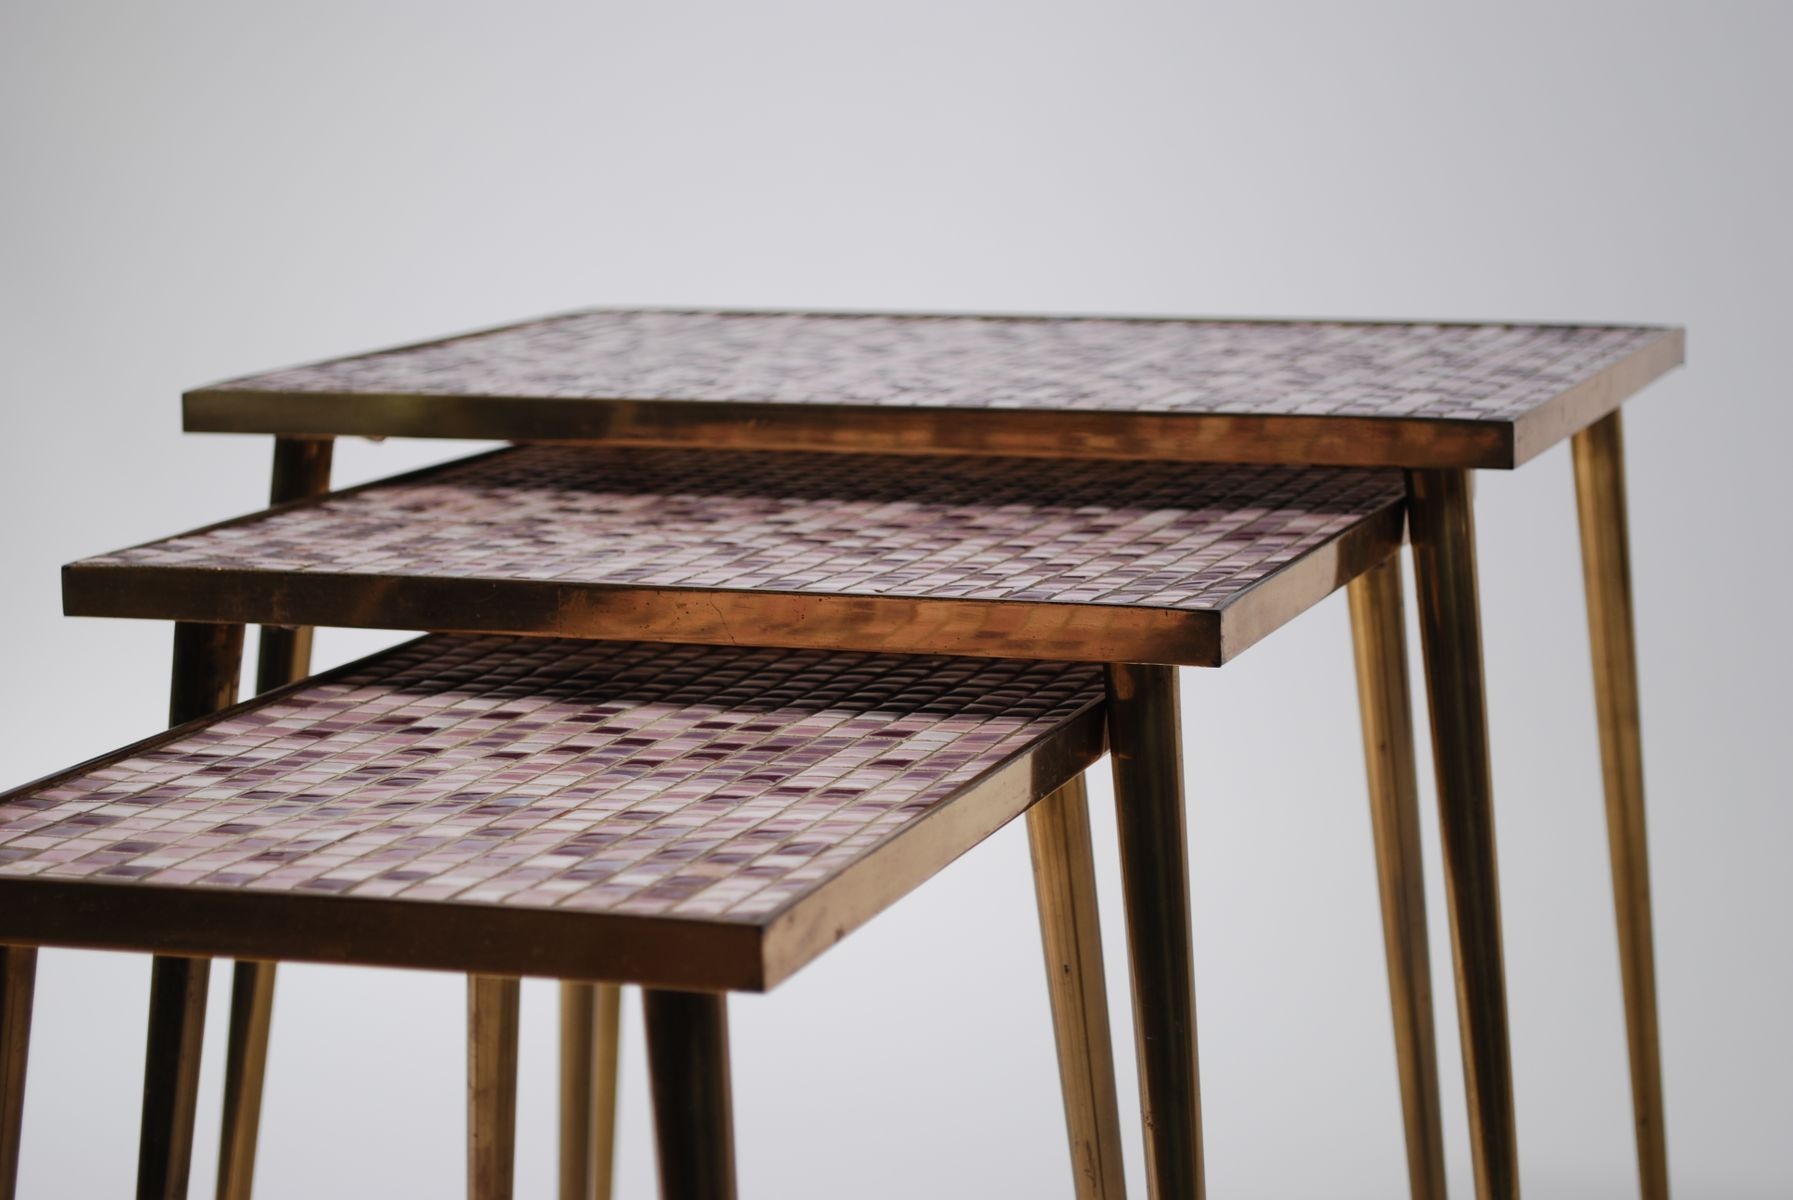 Amazing photo of Mid Century Mosaic Nesting Tables 1950 Set of 3 for sale at Pamono with #6A442A color and 1792x1200 pixels